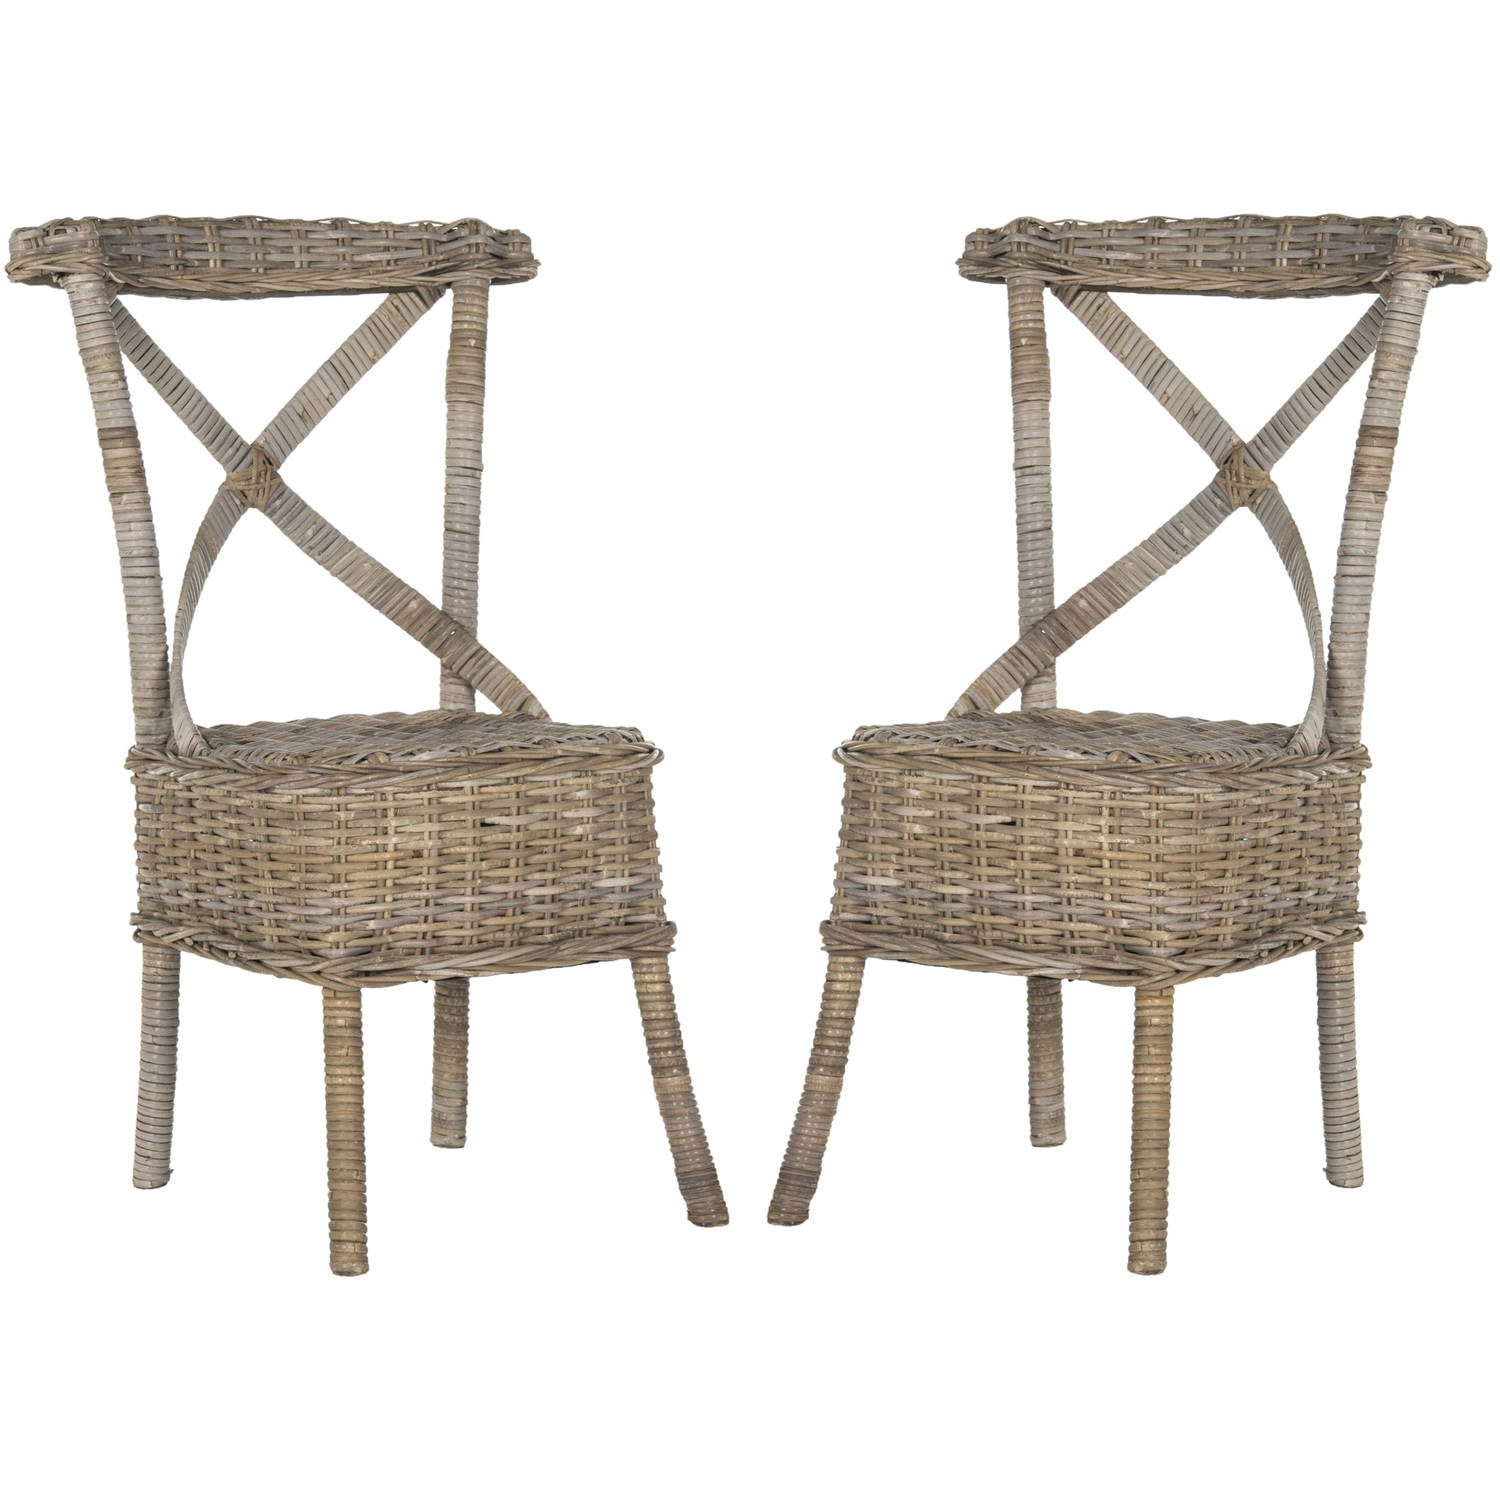 Genial Safavieh Katell Wicker Side Chair, Multiple Colors, Set Of 2